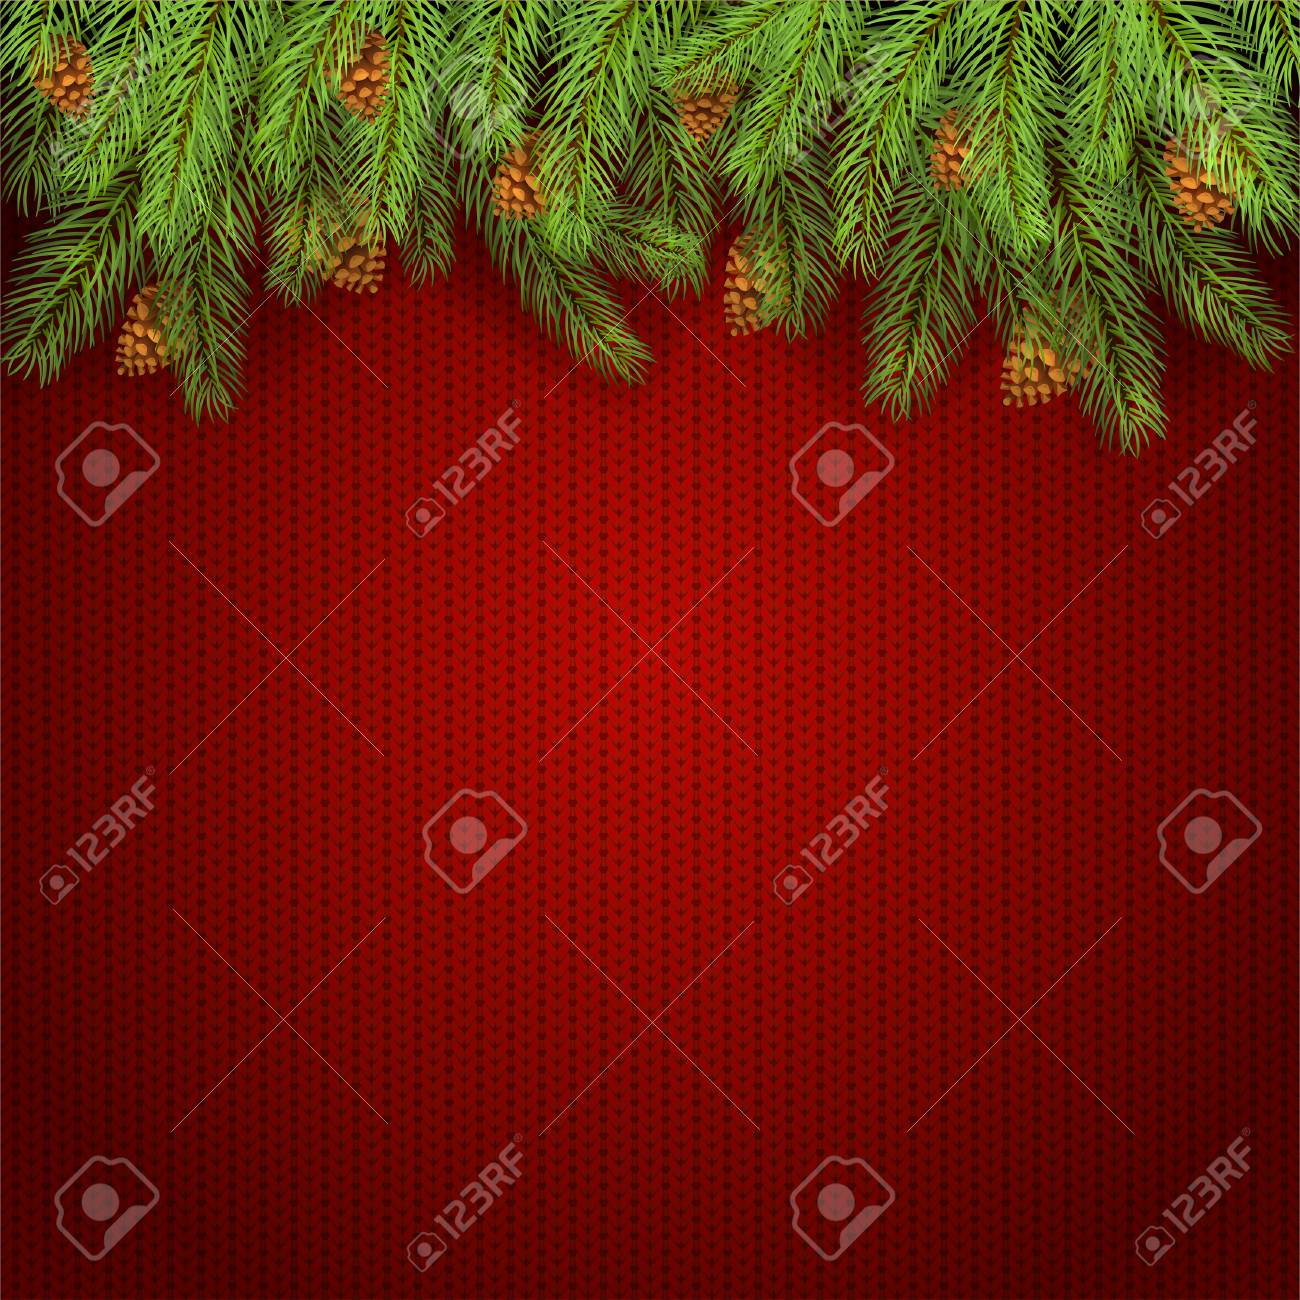 Christmas Background And Spruce Branches With Pine Cones. Holiday ...